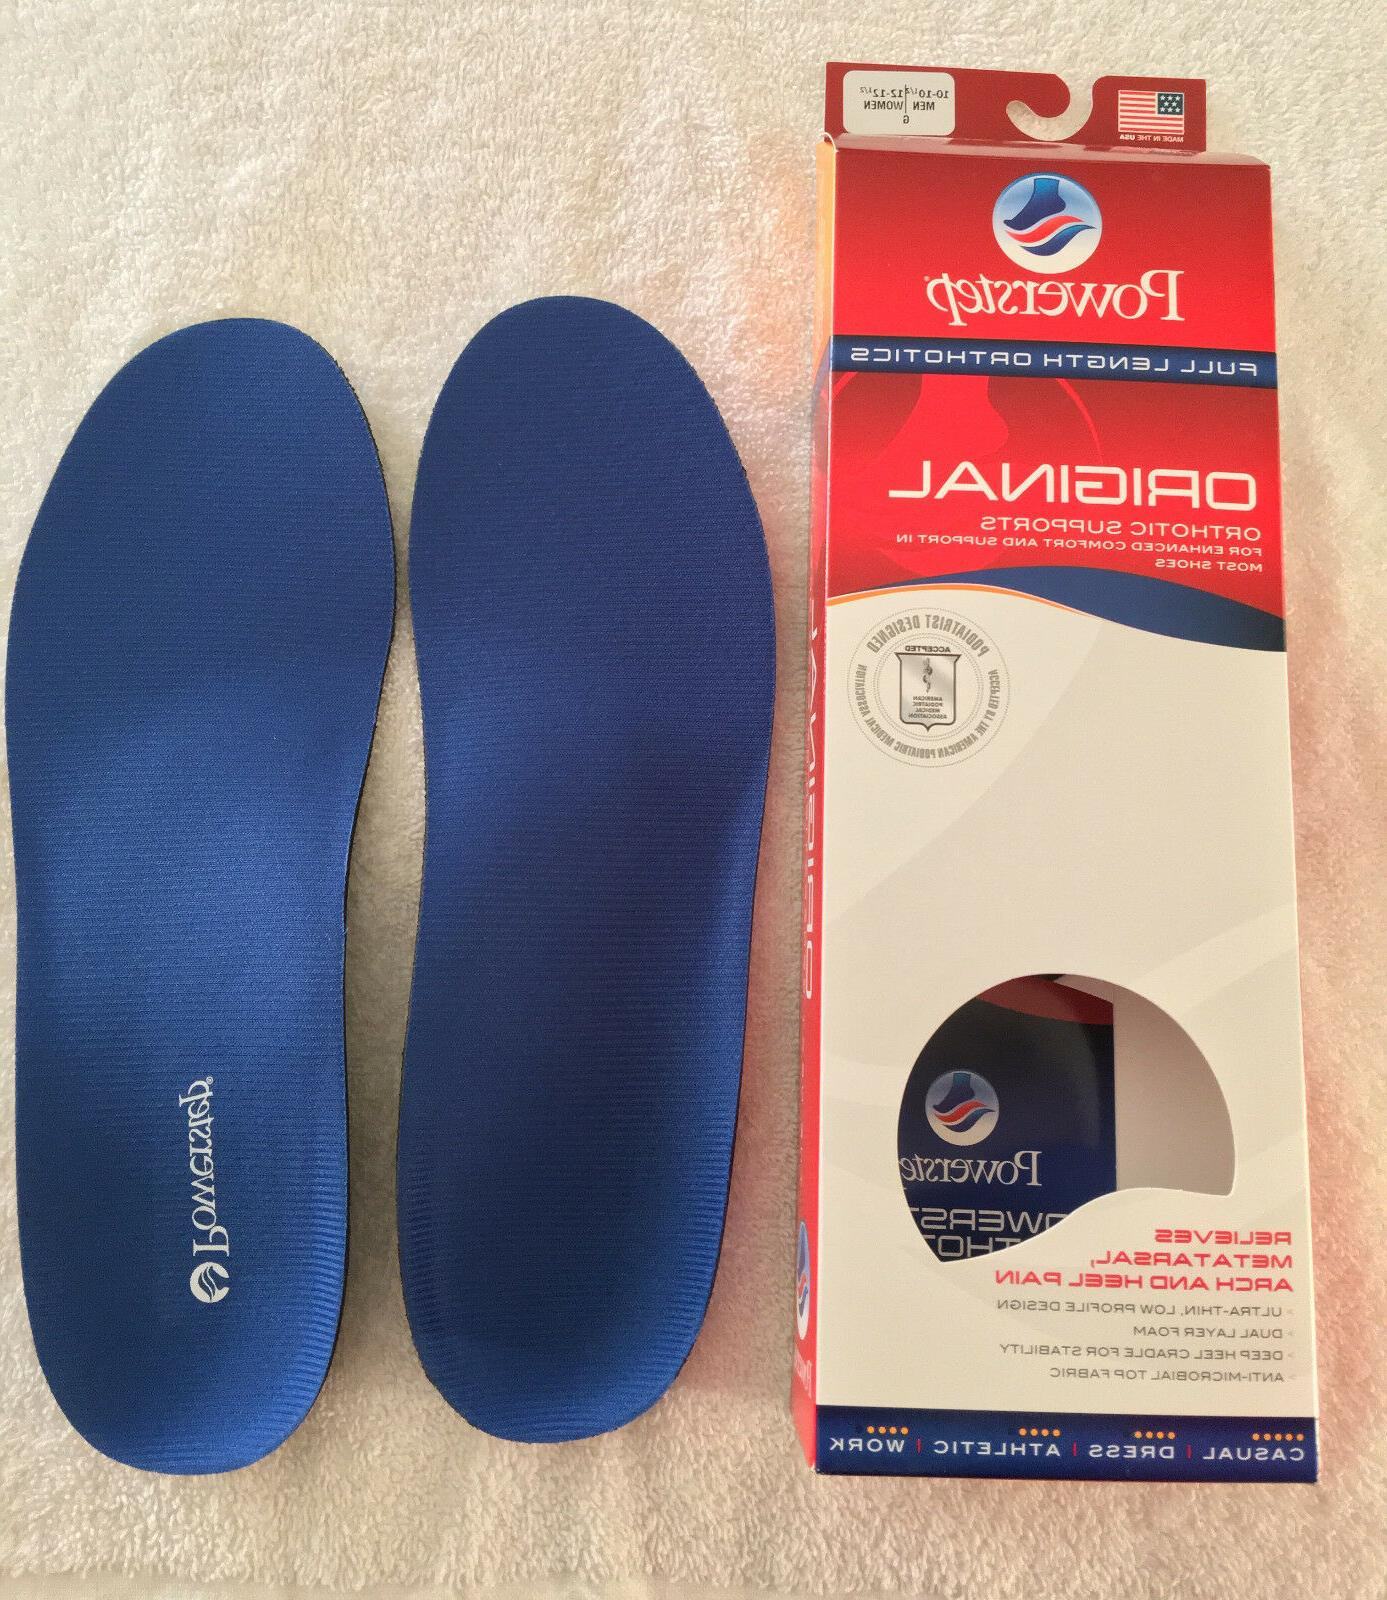 POWERSTEP ORIGINAL Orthotic Supports Length Inserts 5001